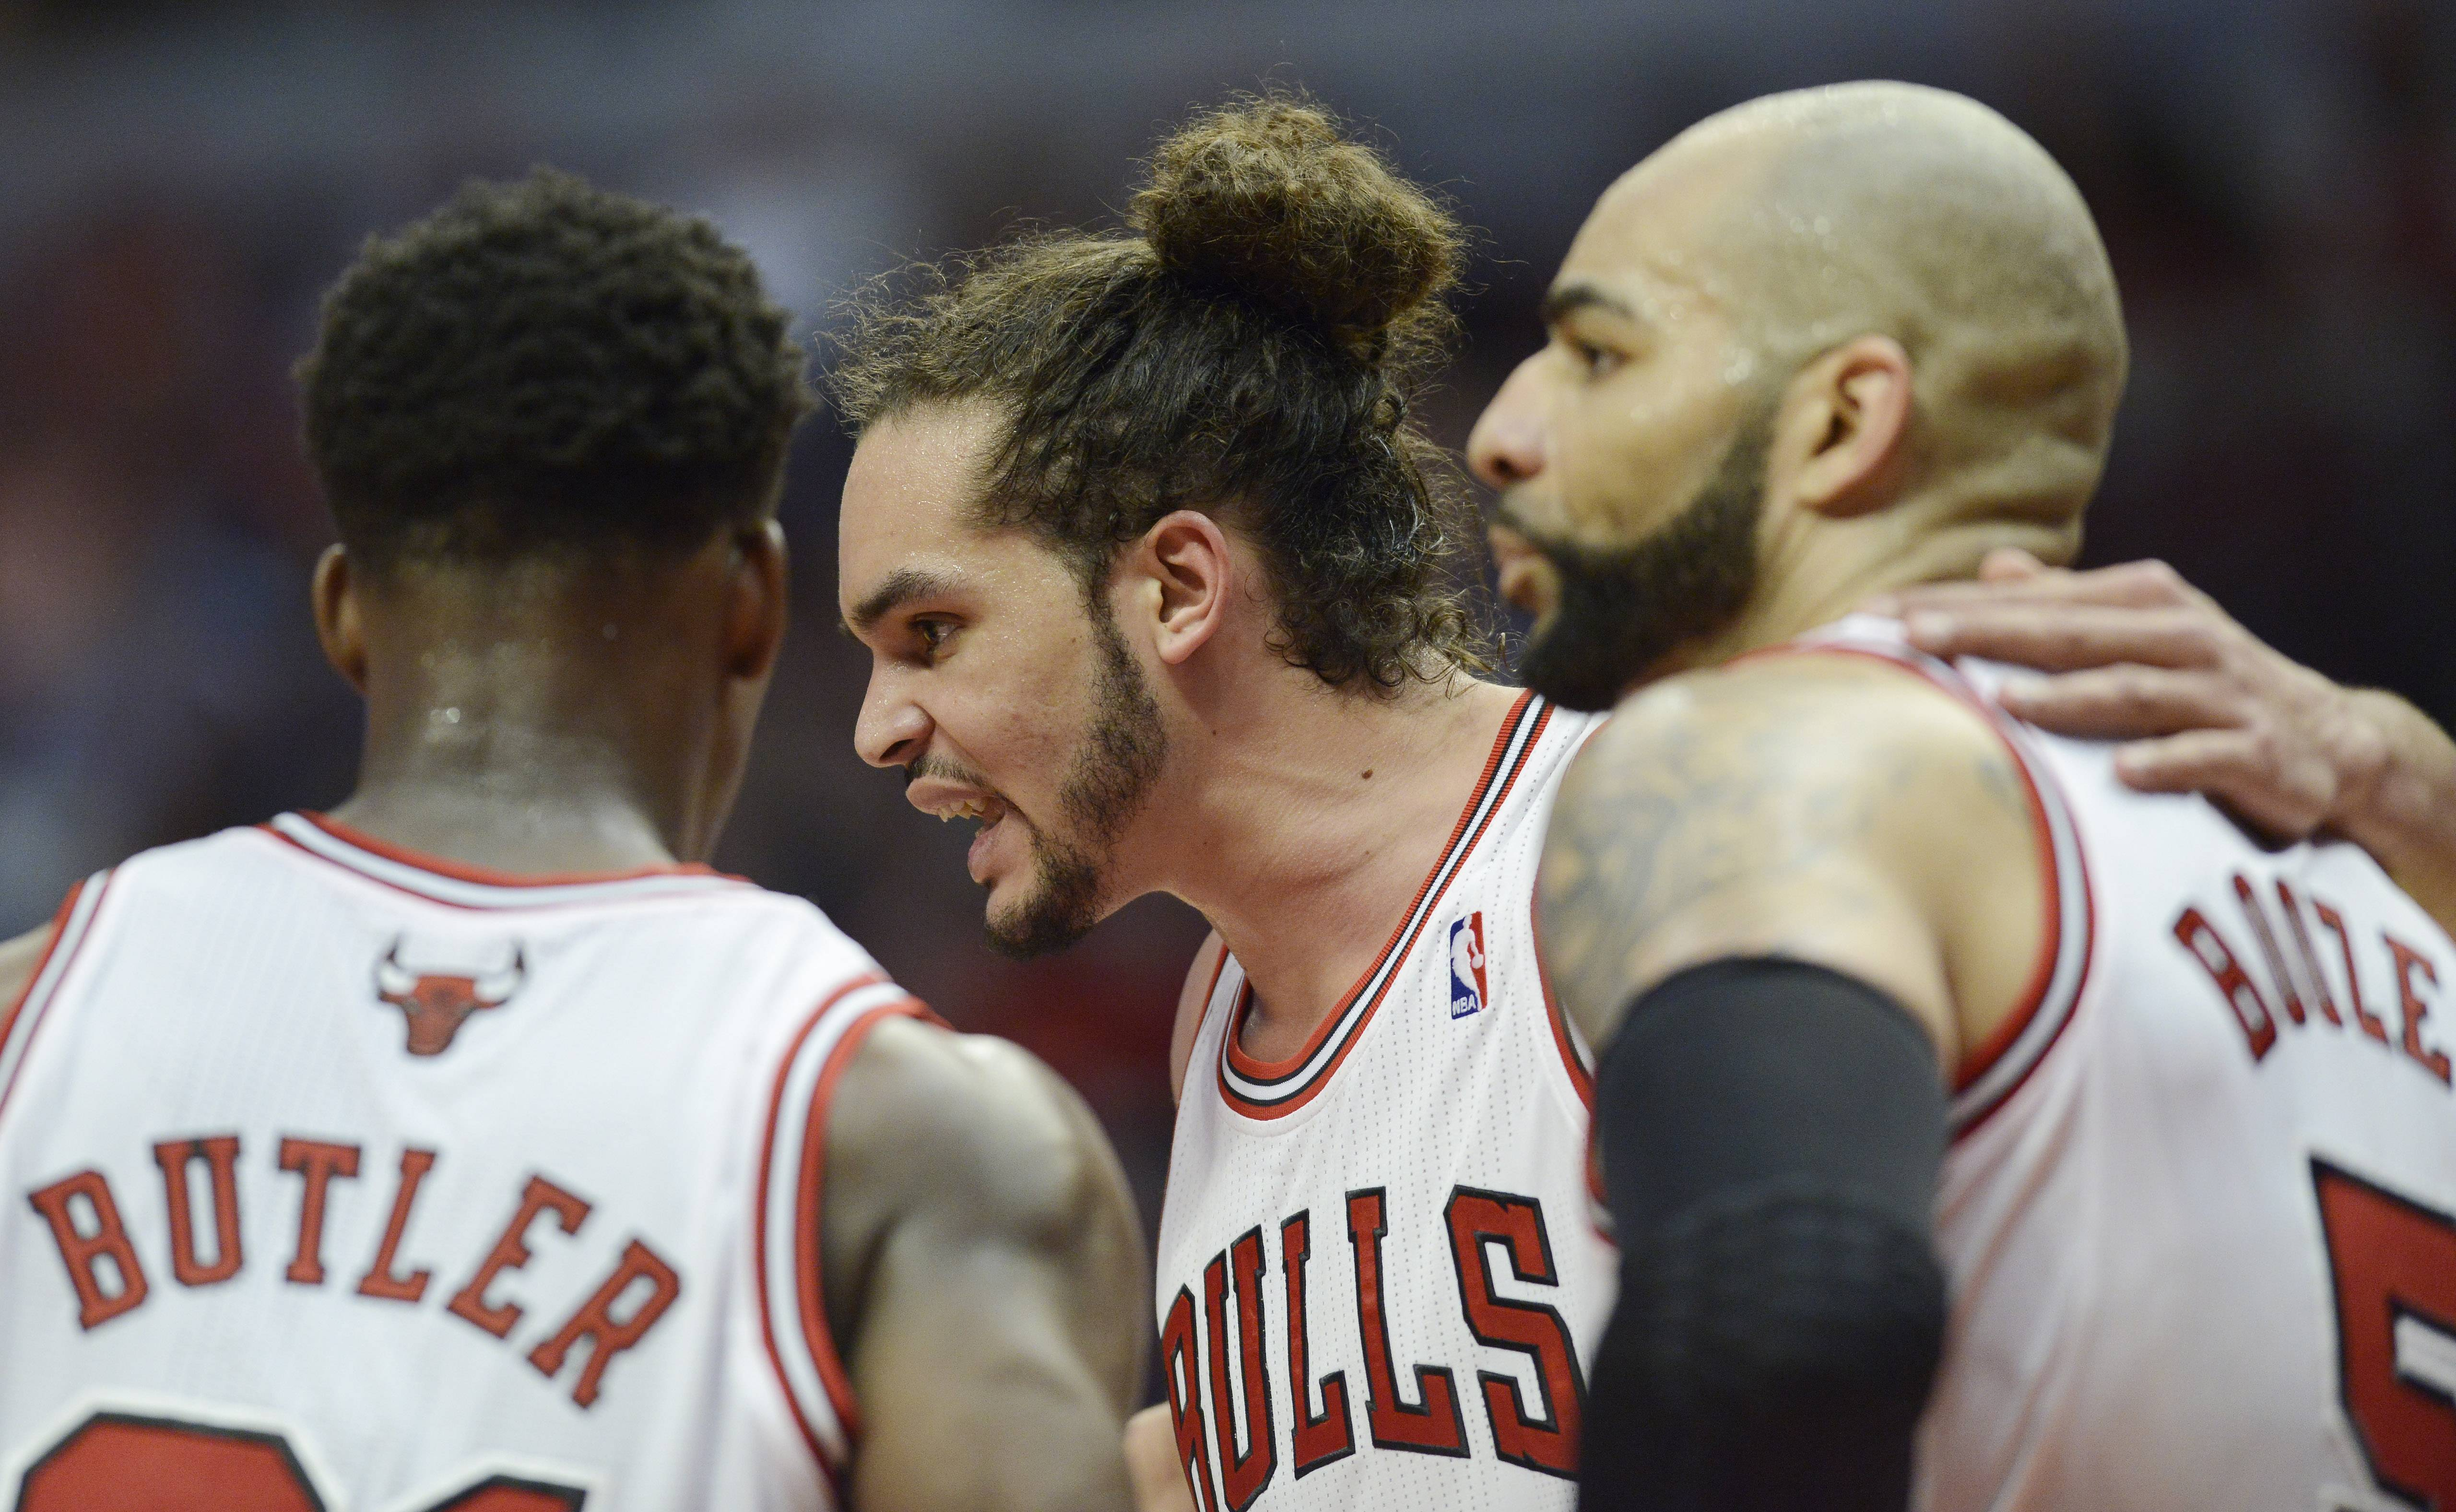 Joakim Noah, middle, talks to teammates Jimmy Butler, left, and Carlos Boozer in Game 6 of the first round playoff game against the Brooklyn Nets at the United Center in Chicago, Thursday, May 2, 2013.